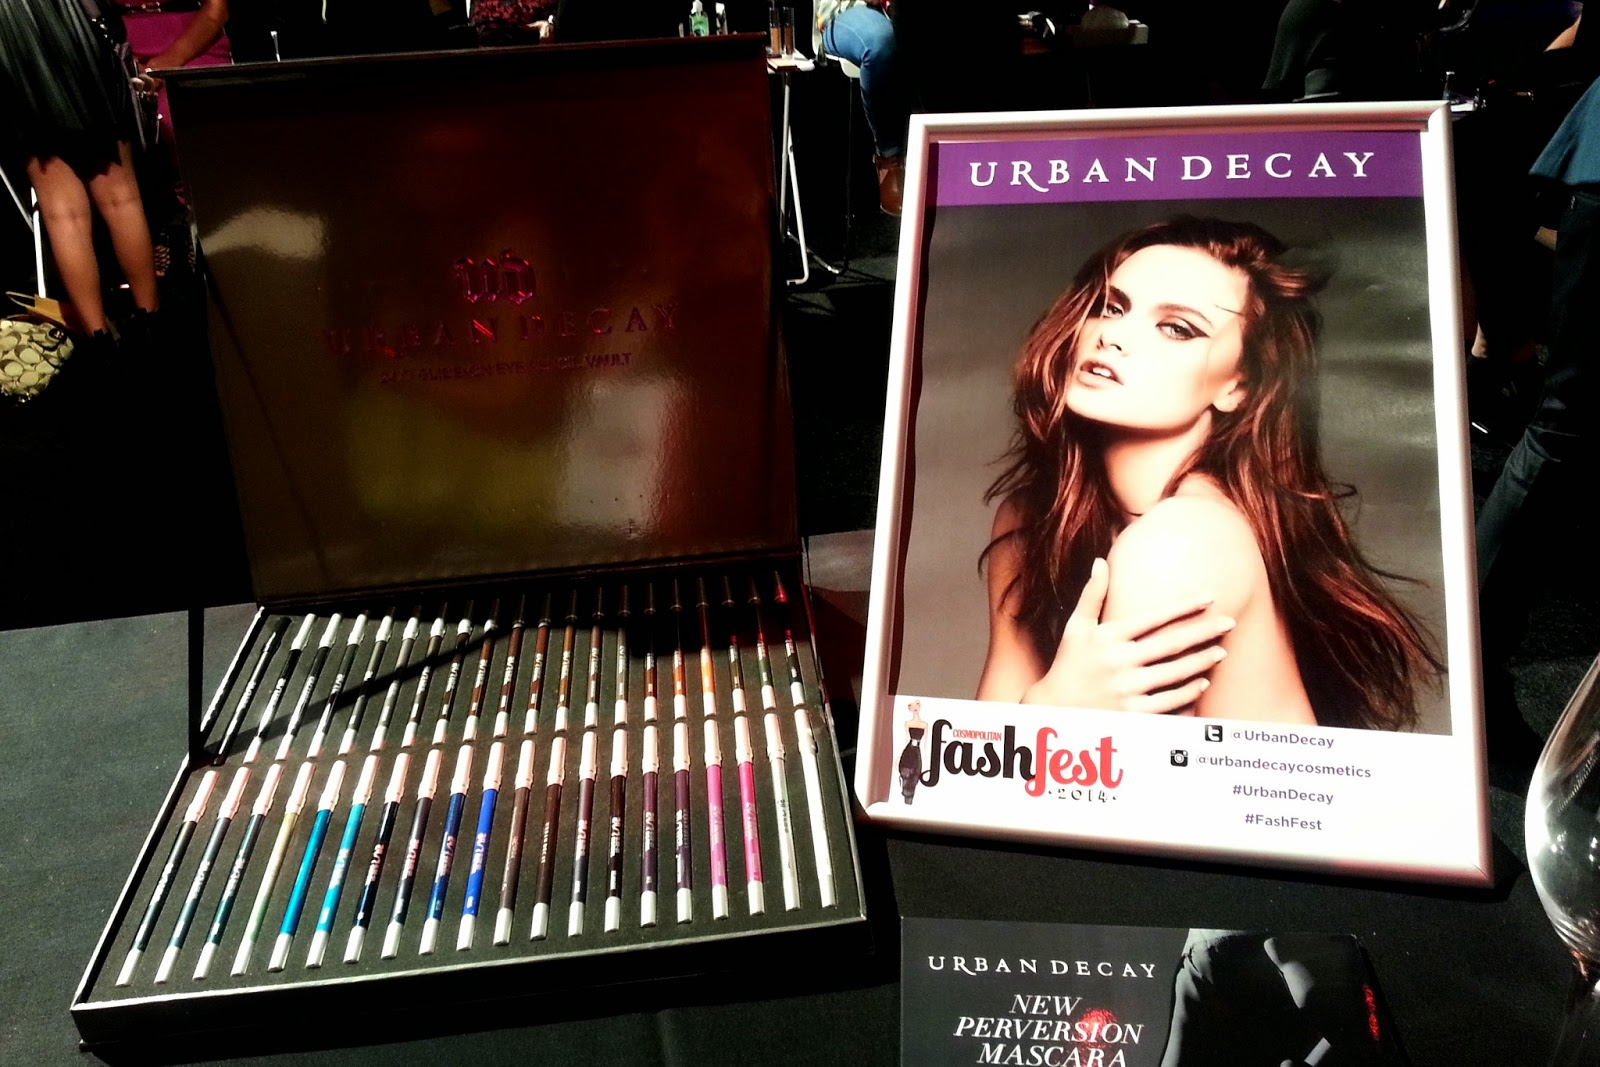 Urban Decay at Cosmopolitan to Catwalk FashFest 2014